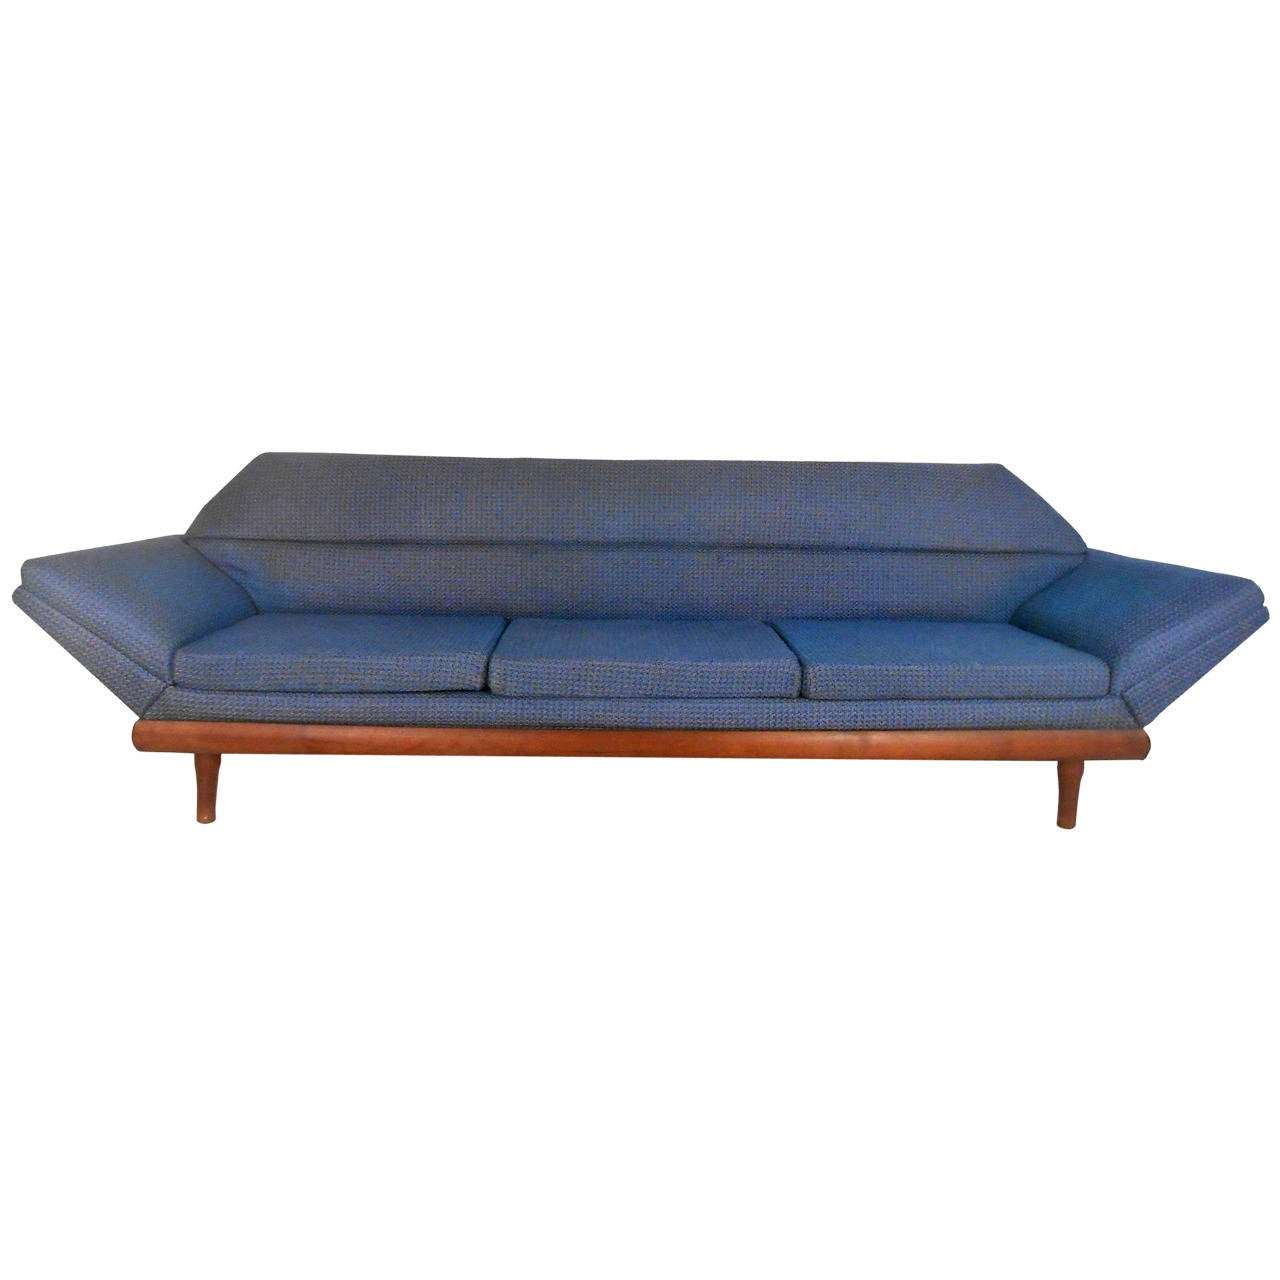 mid century modern adrian pearsall style sofa at 1stdibs. Black Bedroom Furniture Sets. Home Design Ideas